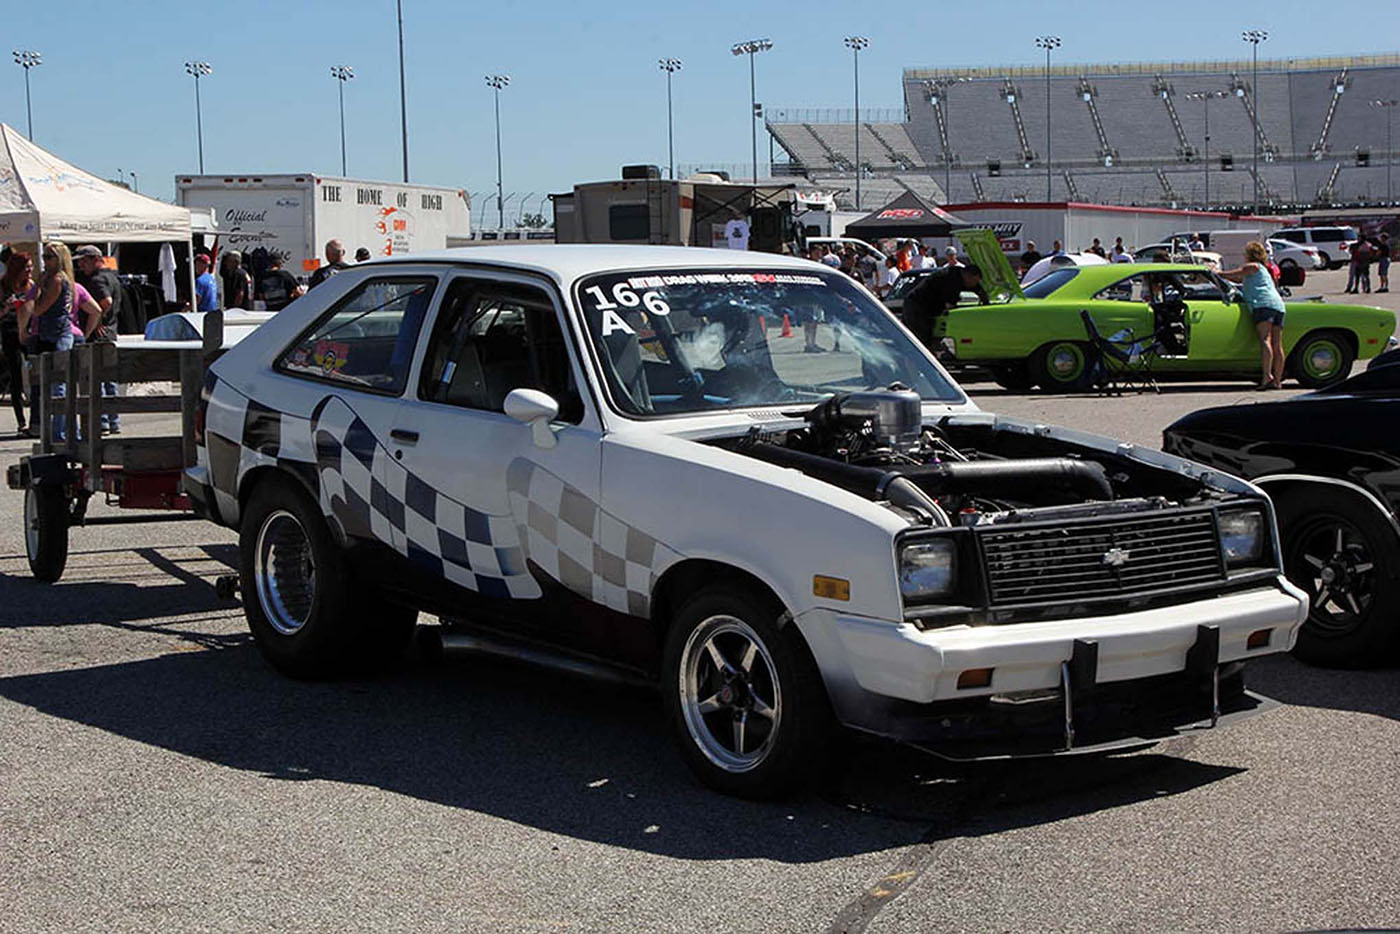 Small cars and big motors always make for an interesting and fun combination don foess brought his very powerful 1985 chevrolet chevette to drag week